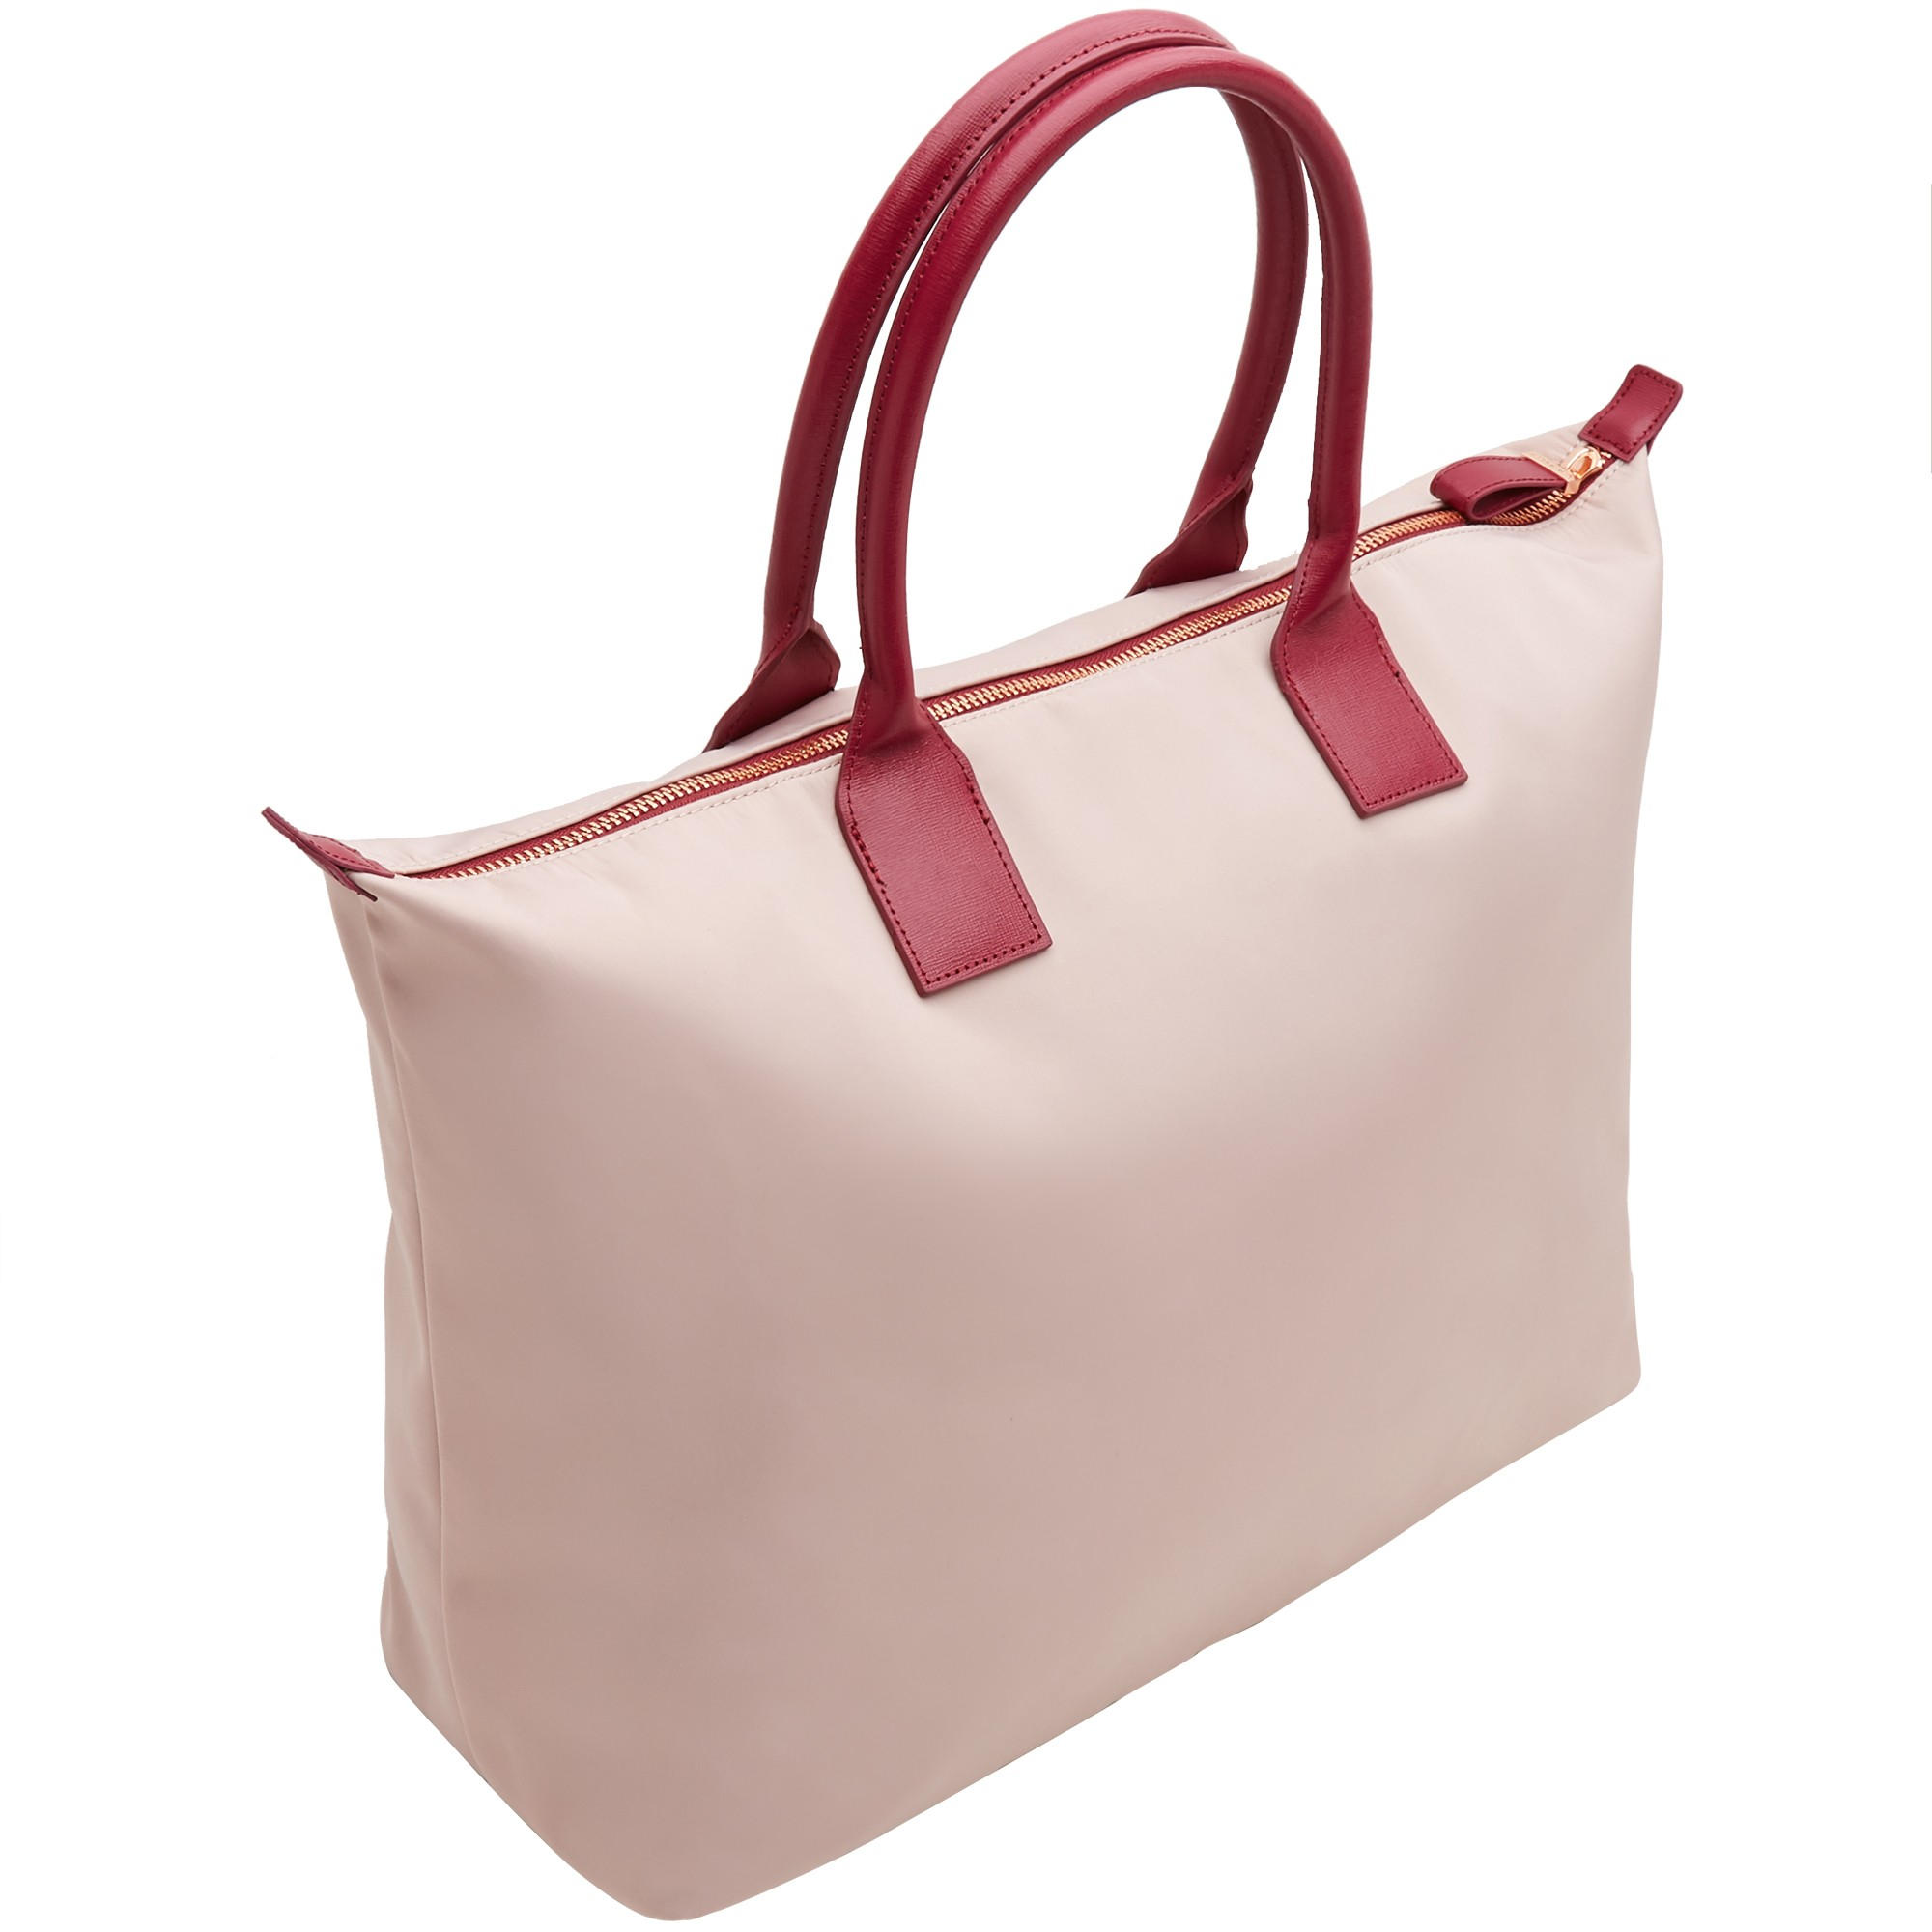 Ted Baker Synthetic Carmen Classic Large Tote Bag in Nude Pink (Pink)